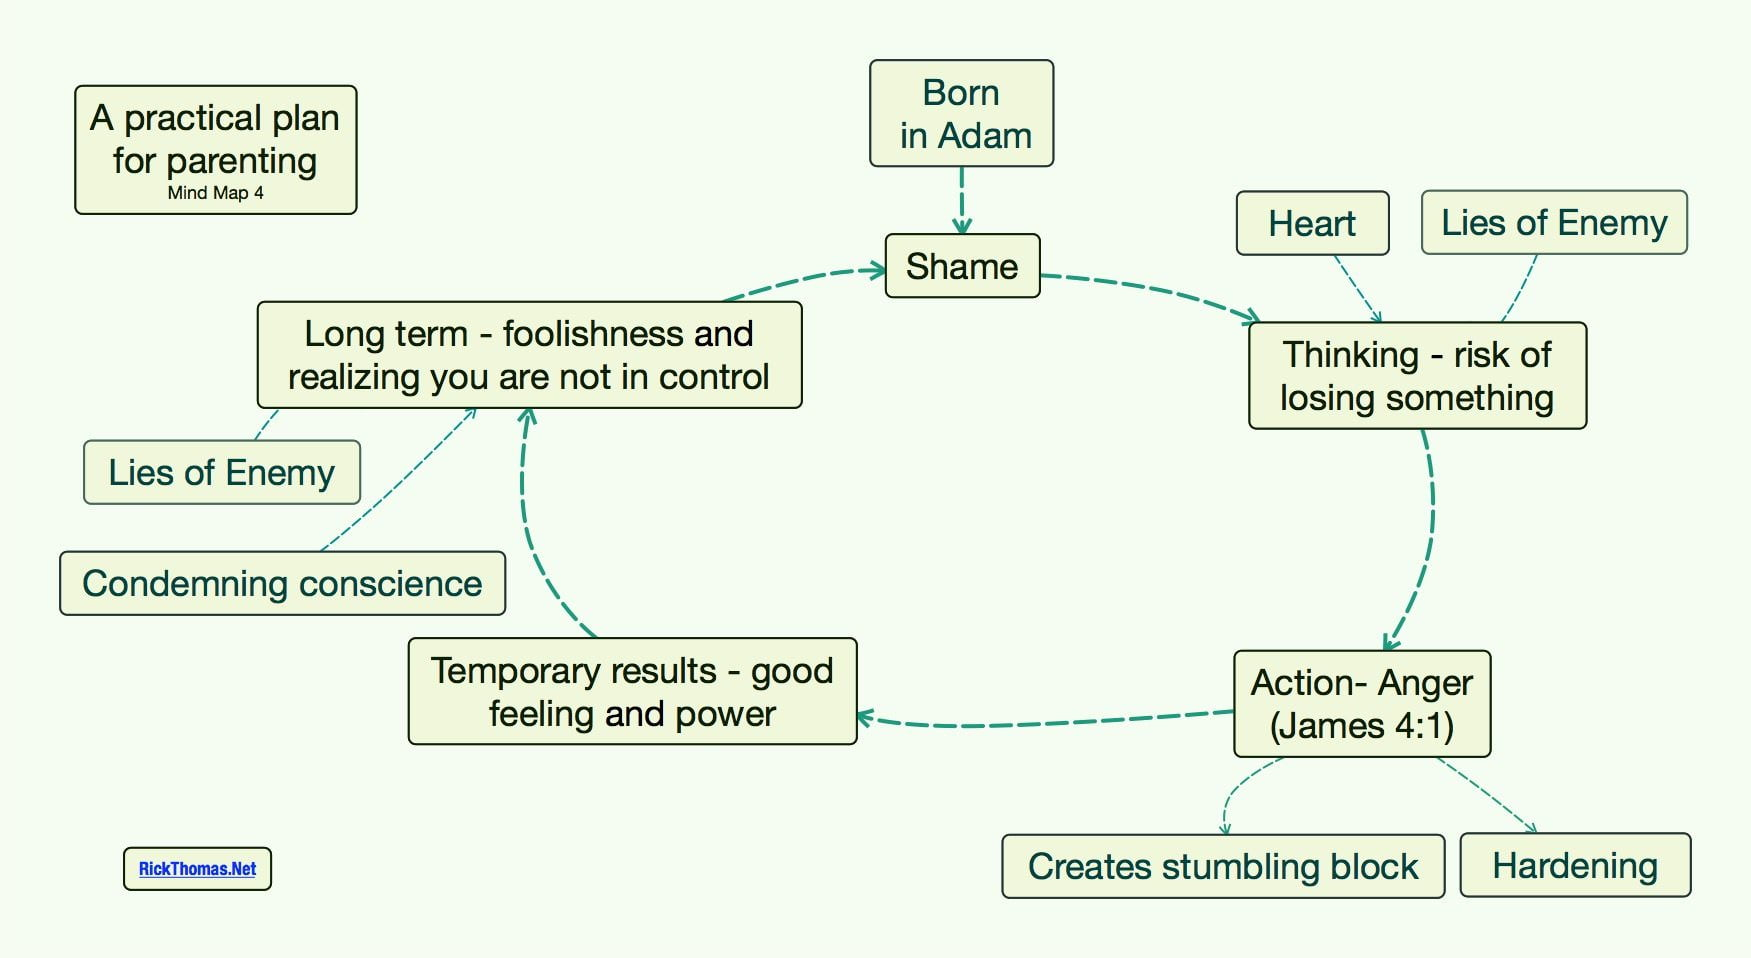 A practical plan for parenting Mind Map 4